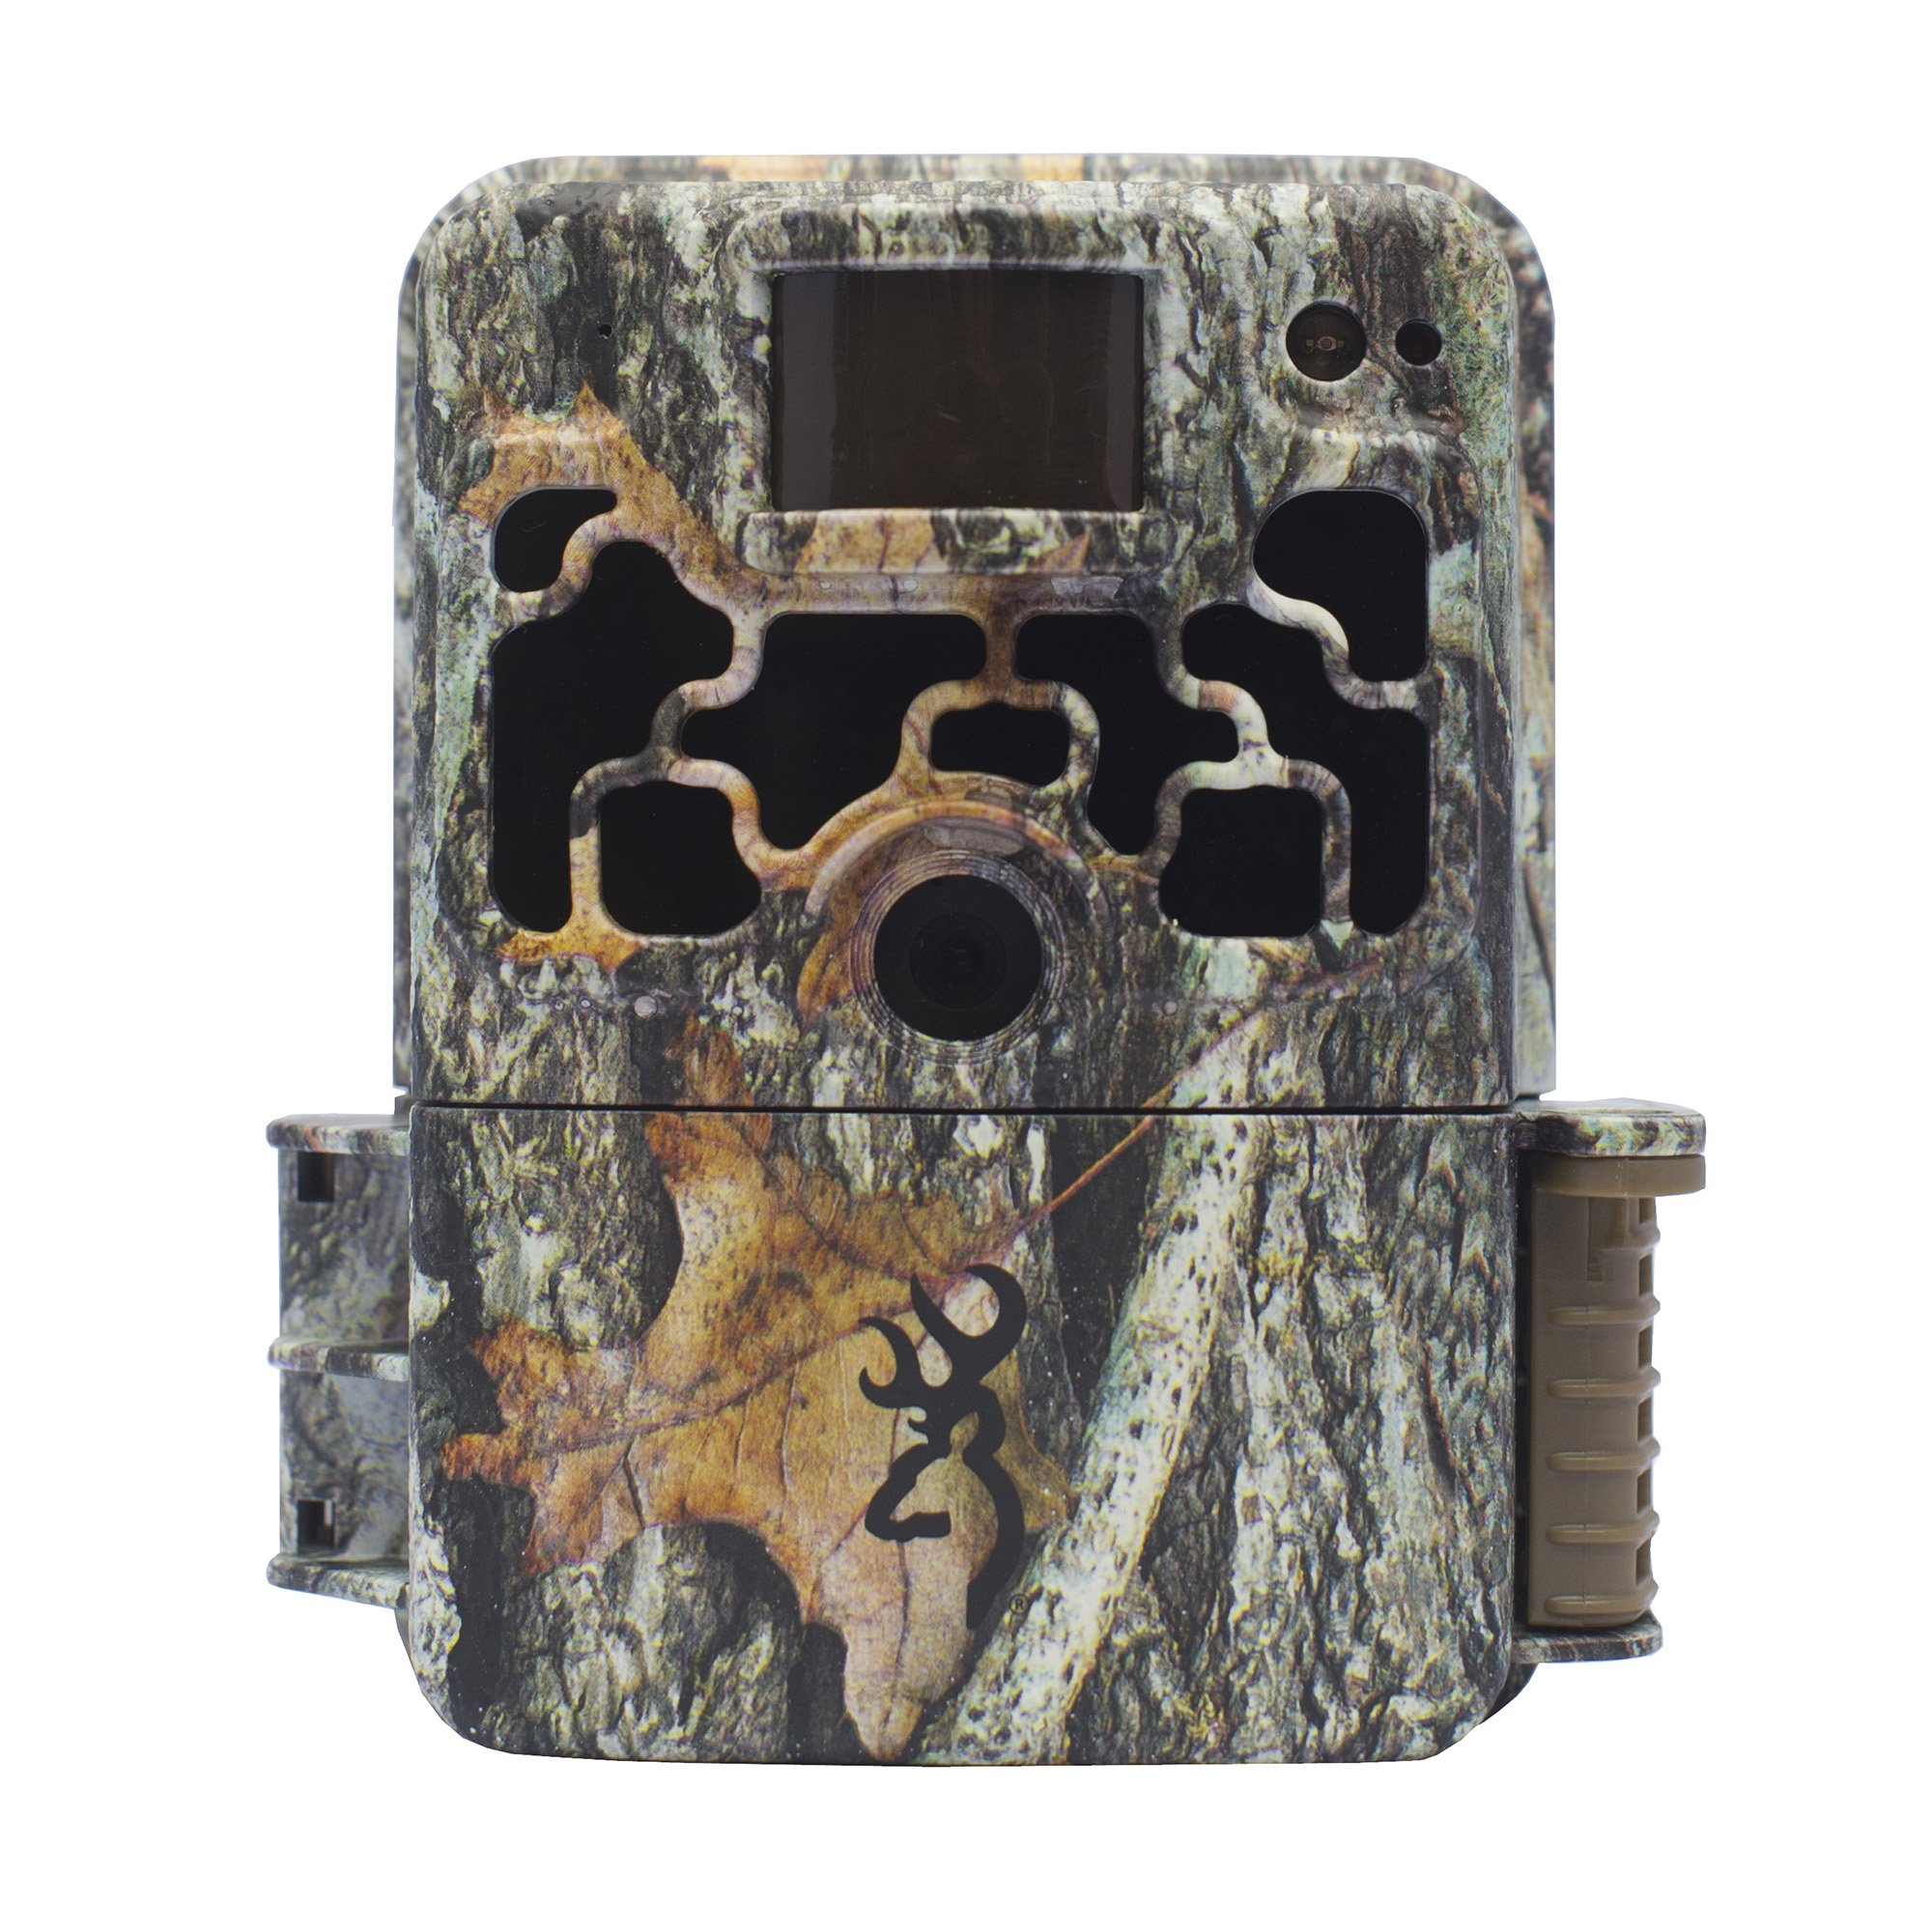 Browning Trail Cameras Dark Ops 940 16MP HD Infrared Game Camera | BTC-6HD-940 by Browning Trail Cameras